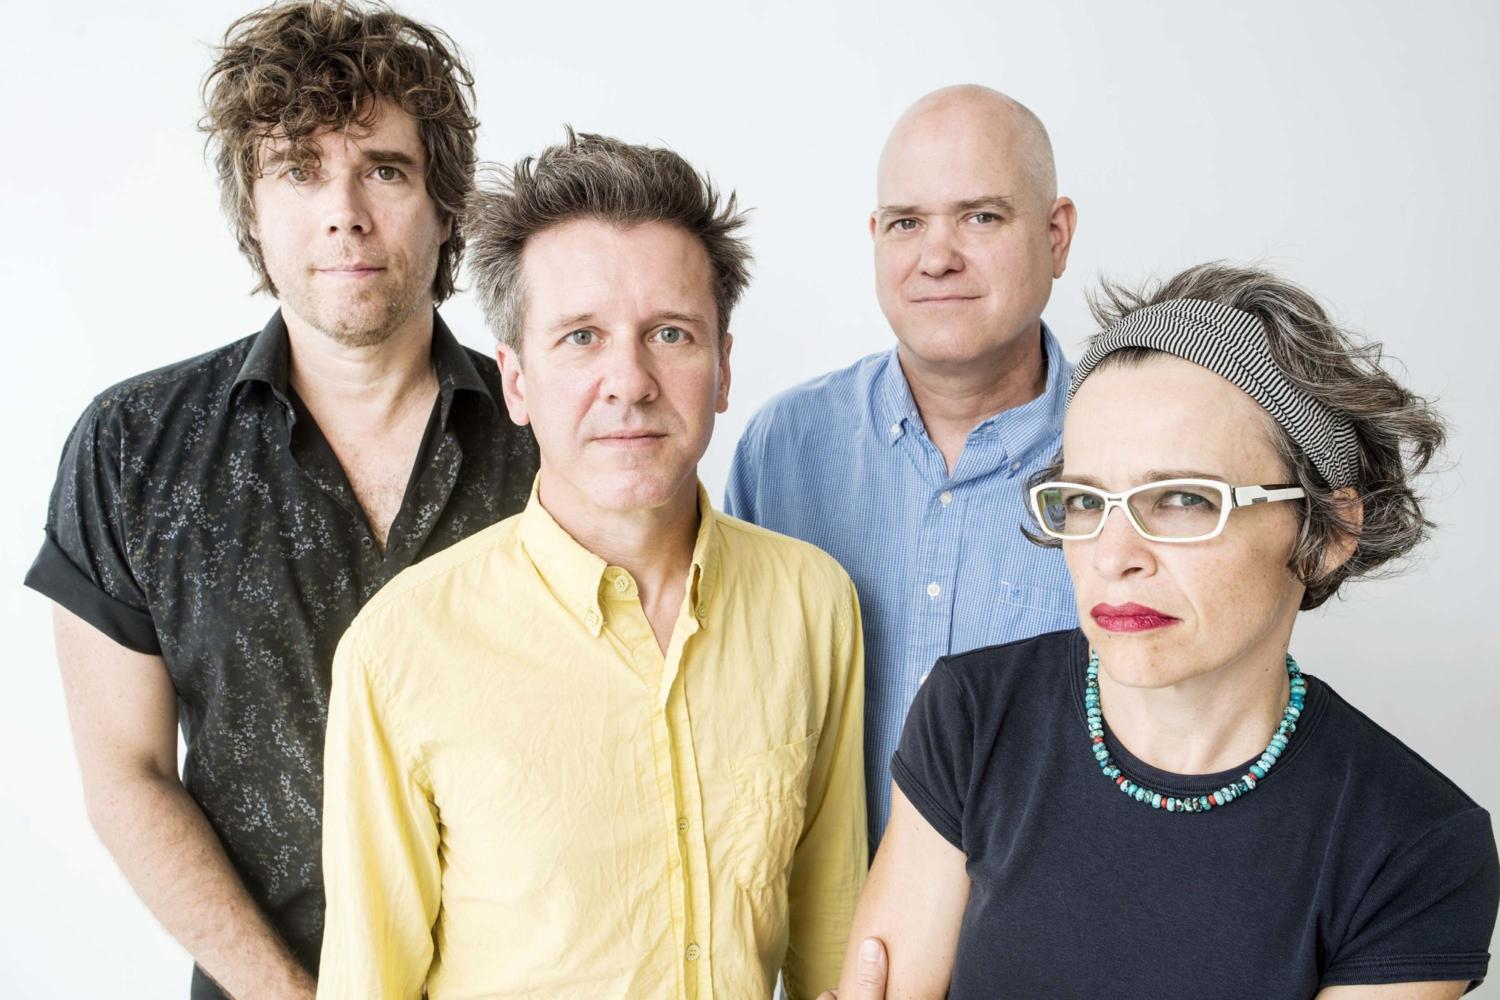 Superchunk share collaboration with Fucked Up's Damian Abraham